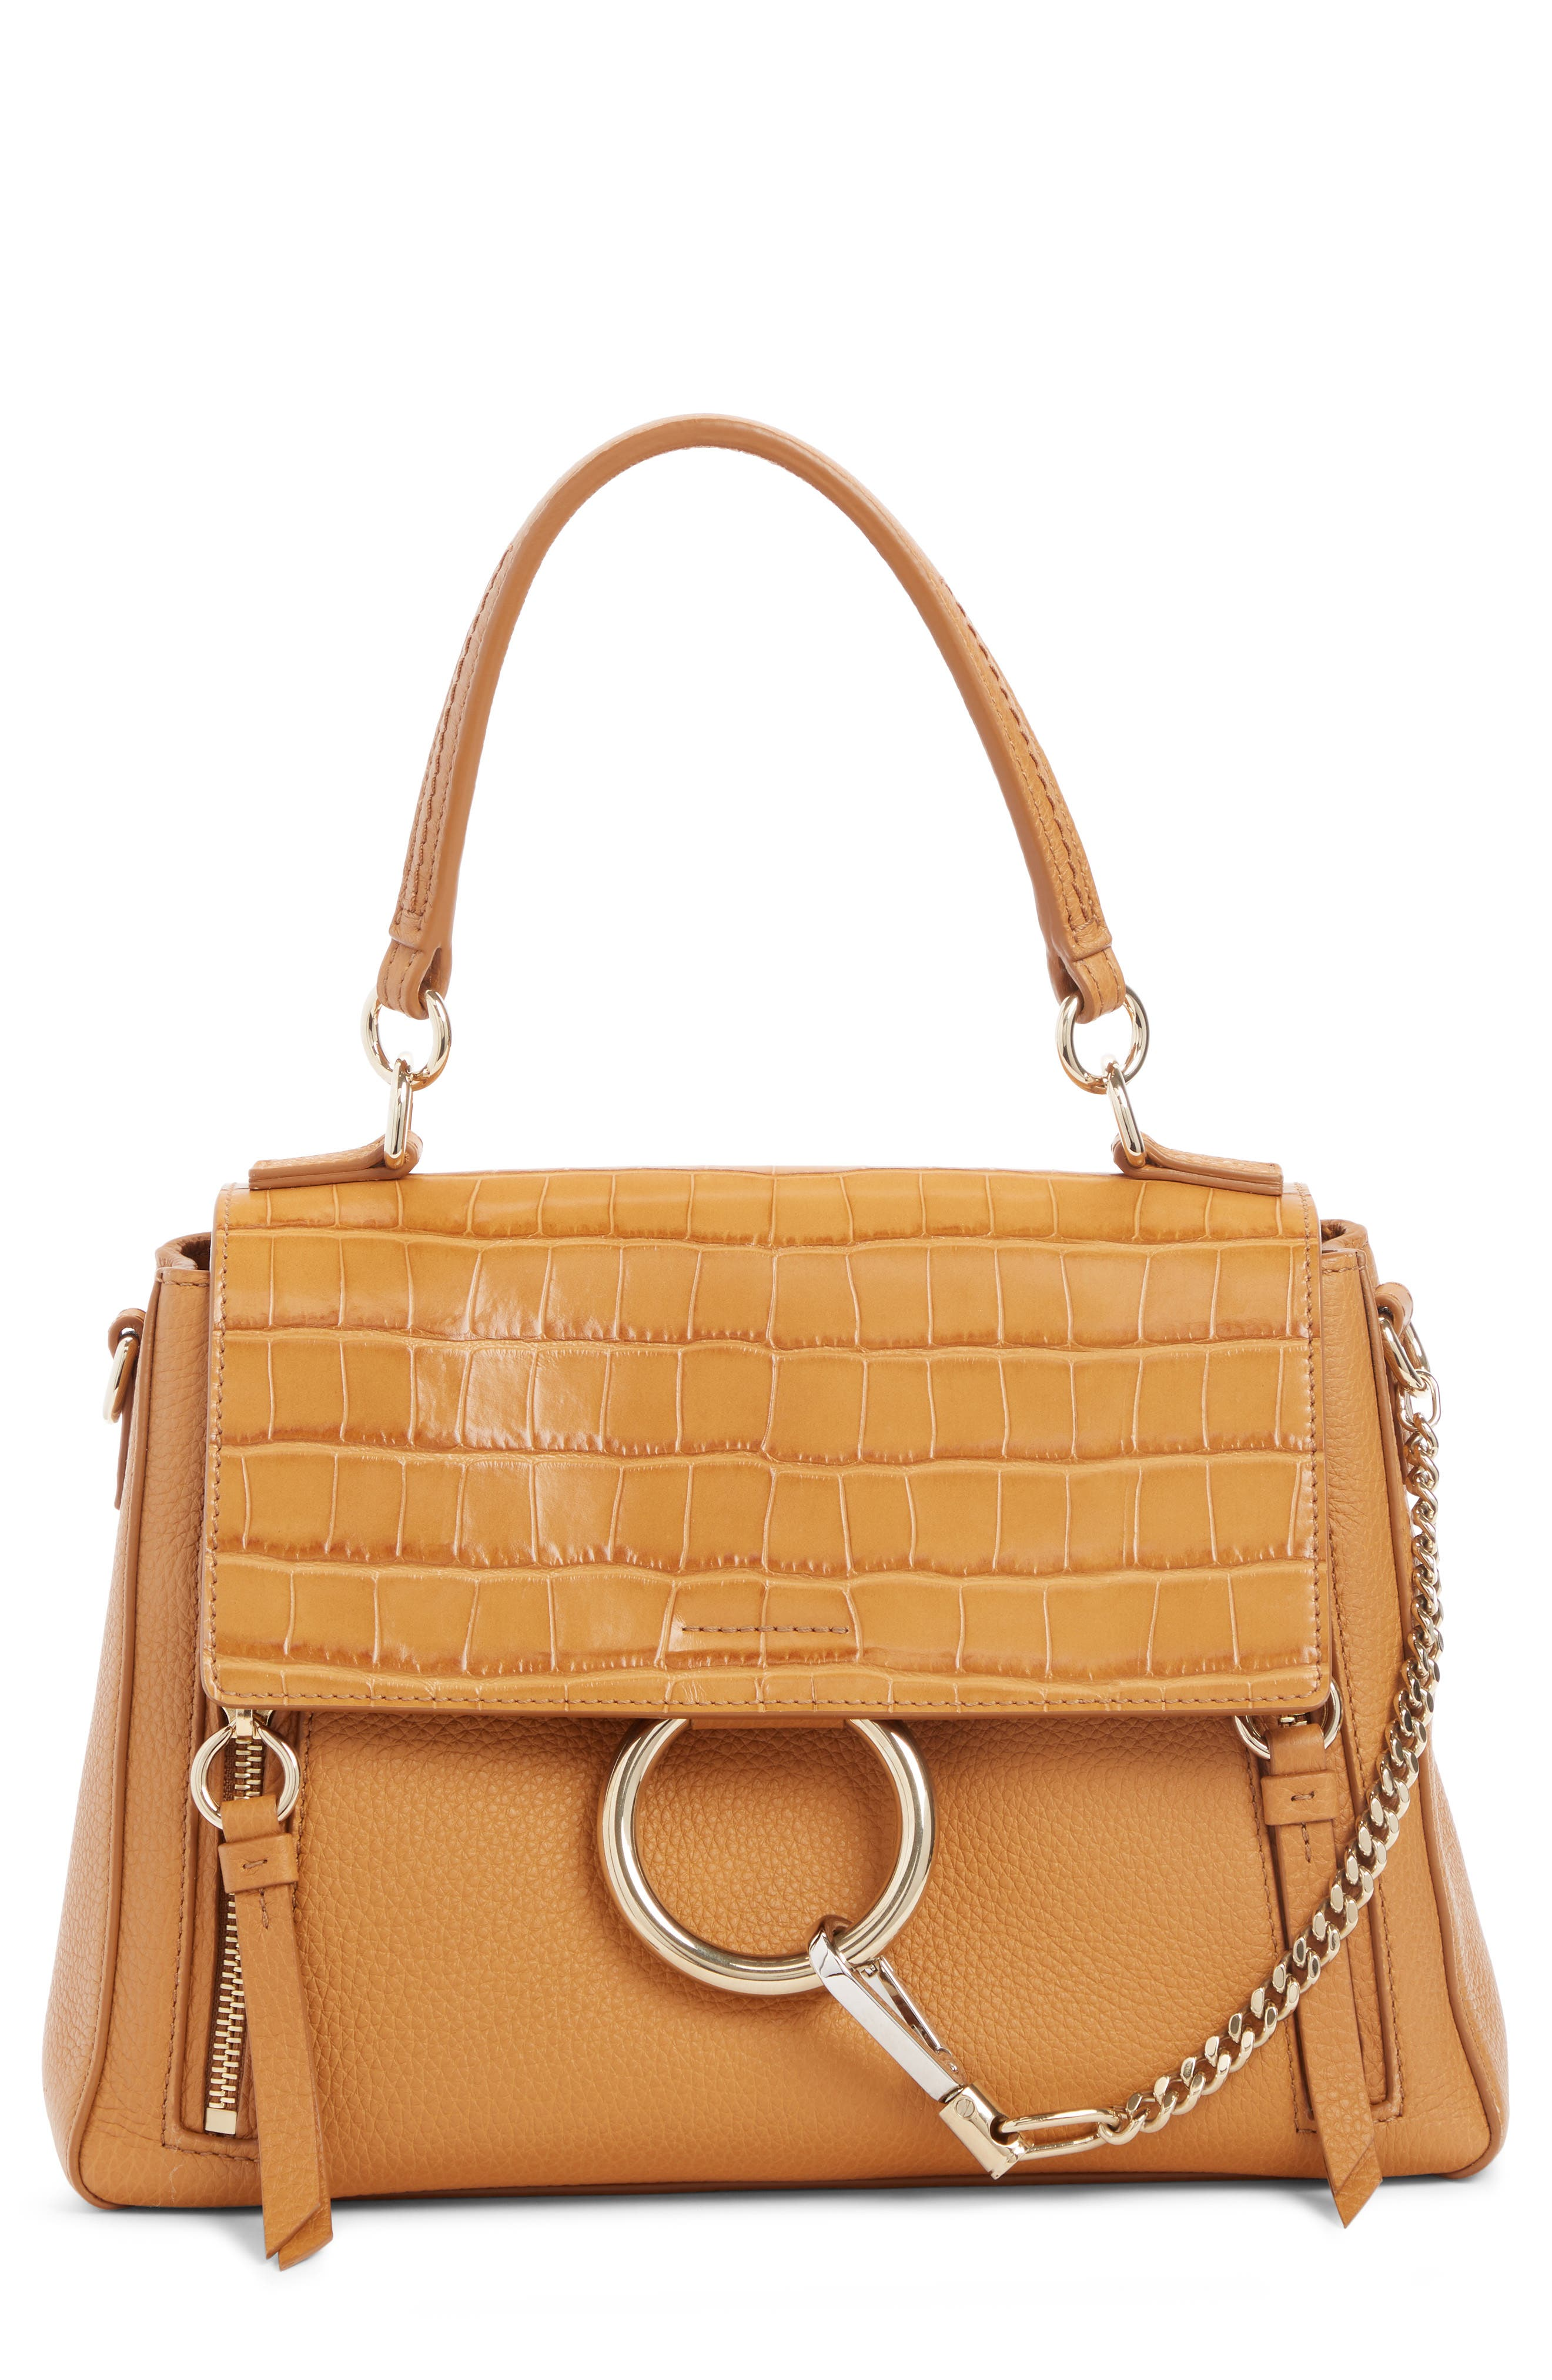 Chloé Small Faye Day Croc Embossed Leather Shoulder Bag | Nordstrom